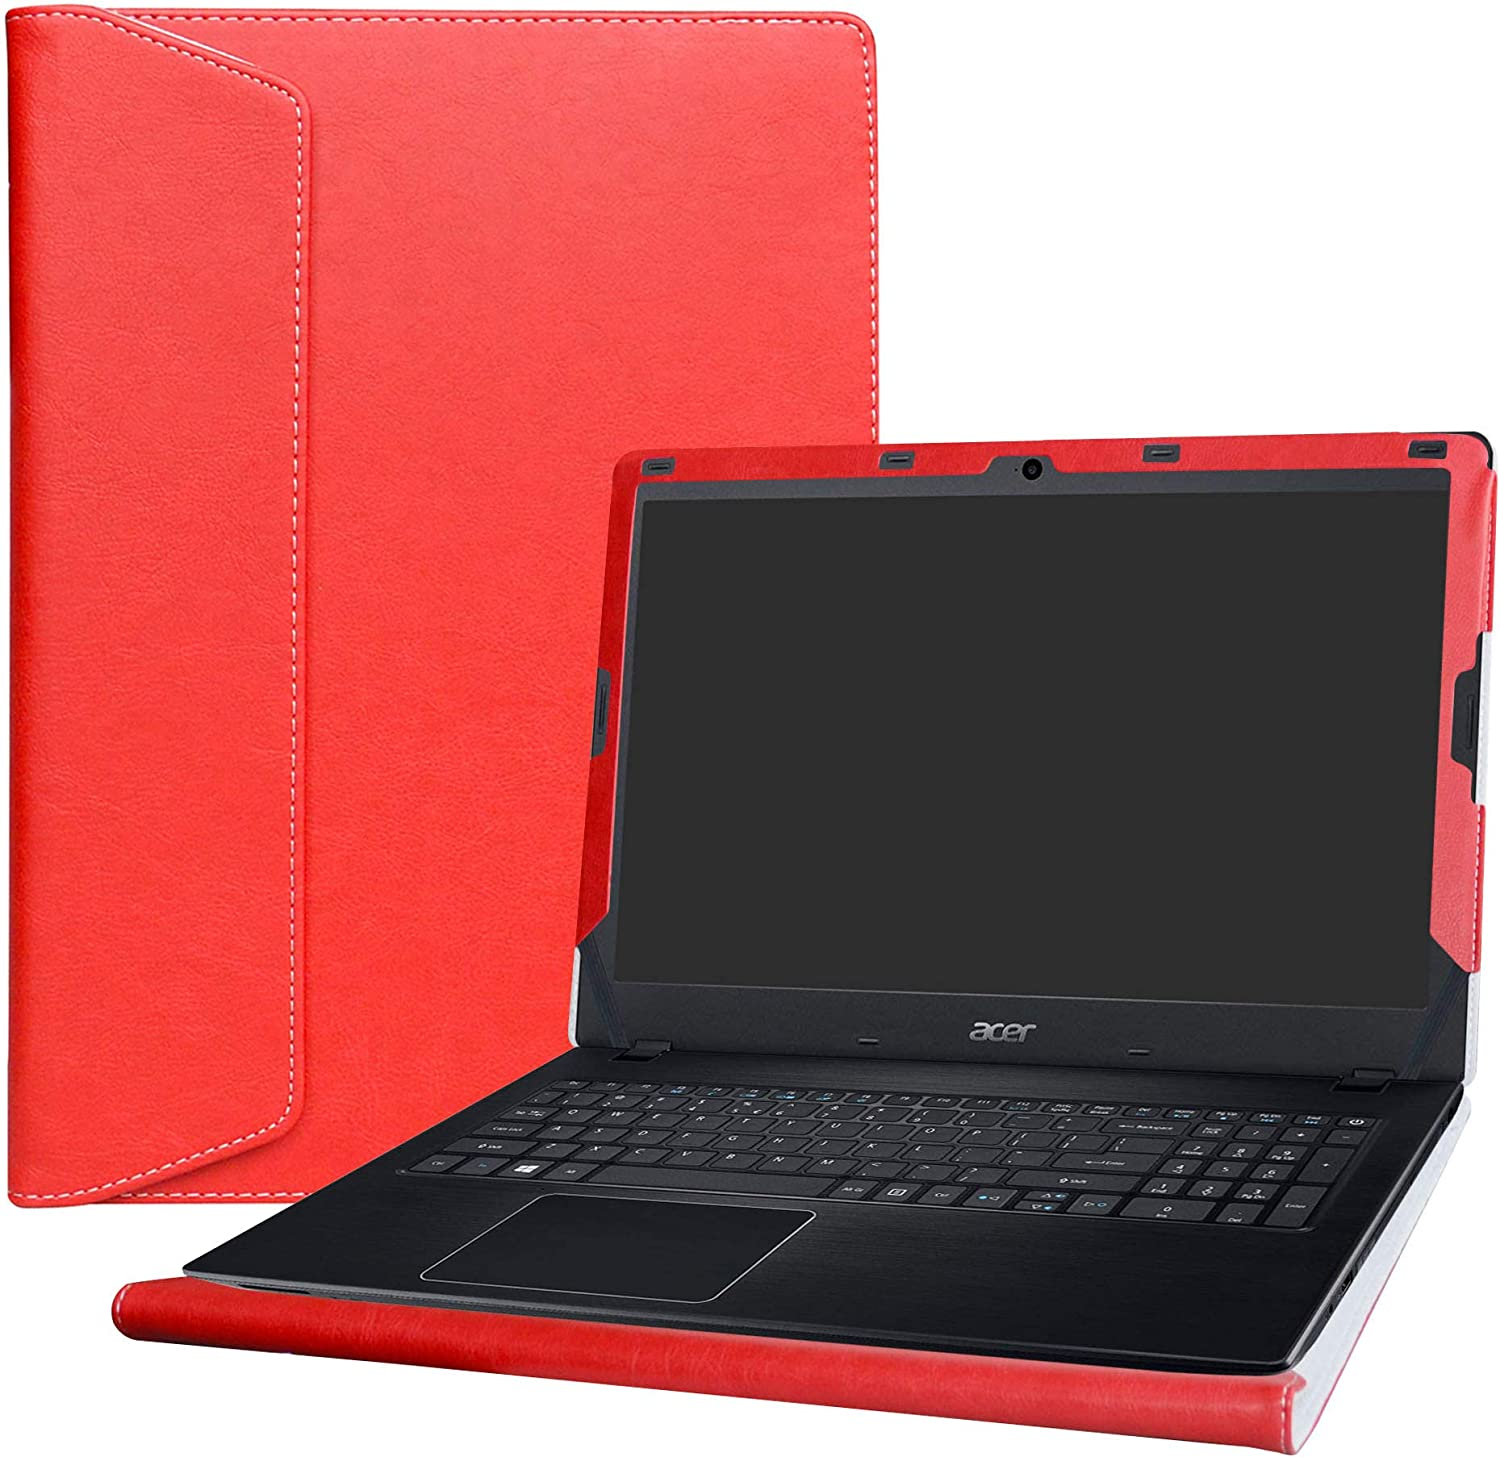 """Alapmk Protective Case Cover for 15.6"""" Acer Aspire E5 E5-575 E5-575G E5-575T E5-576 E5-576G E5-553 E5-553G/Aspire F 15 F5-573G F5-573/Aspire ES 15 ES1-572 ES1-533 Serie Laptop,Red"""